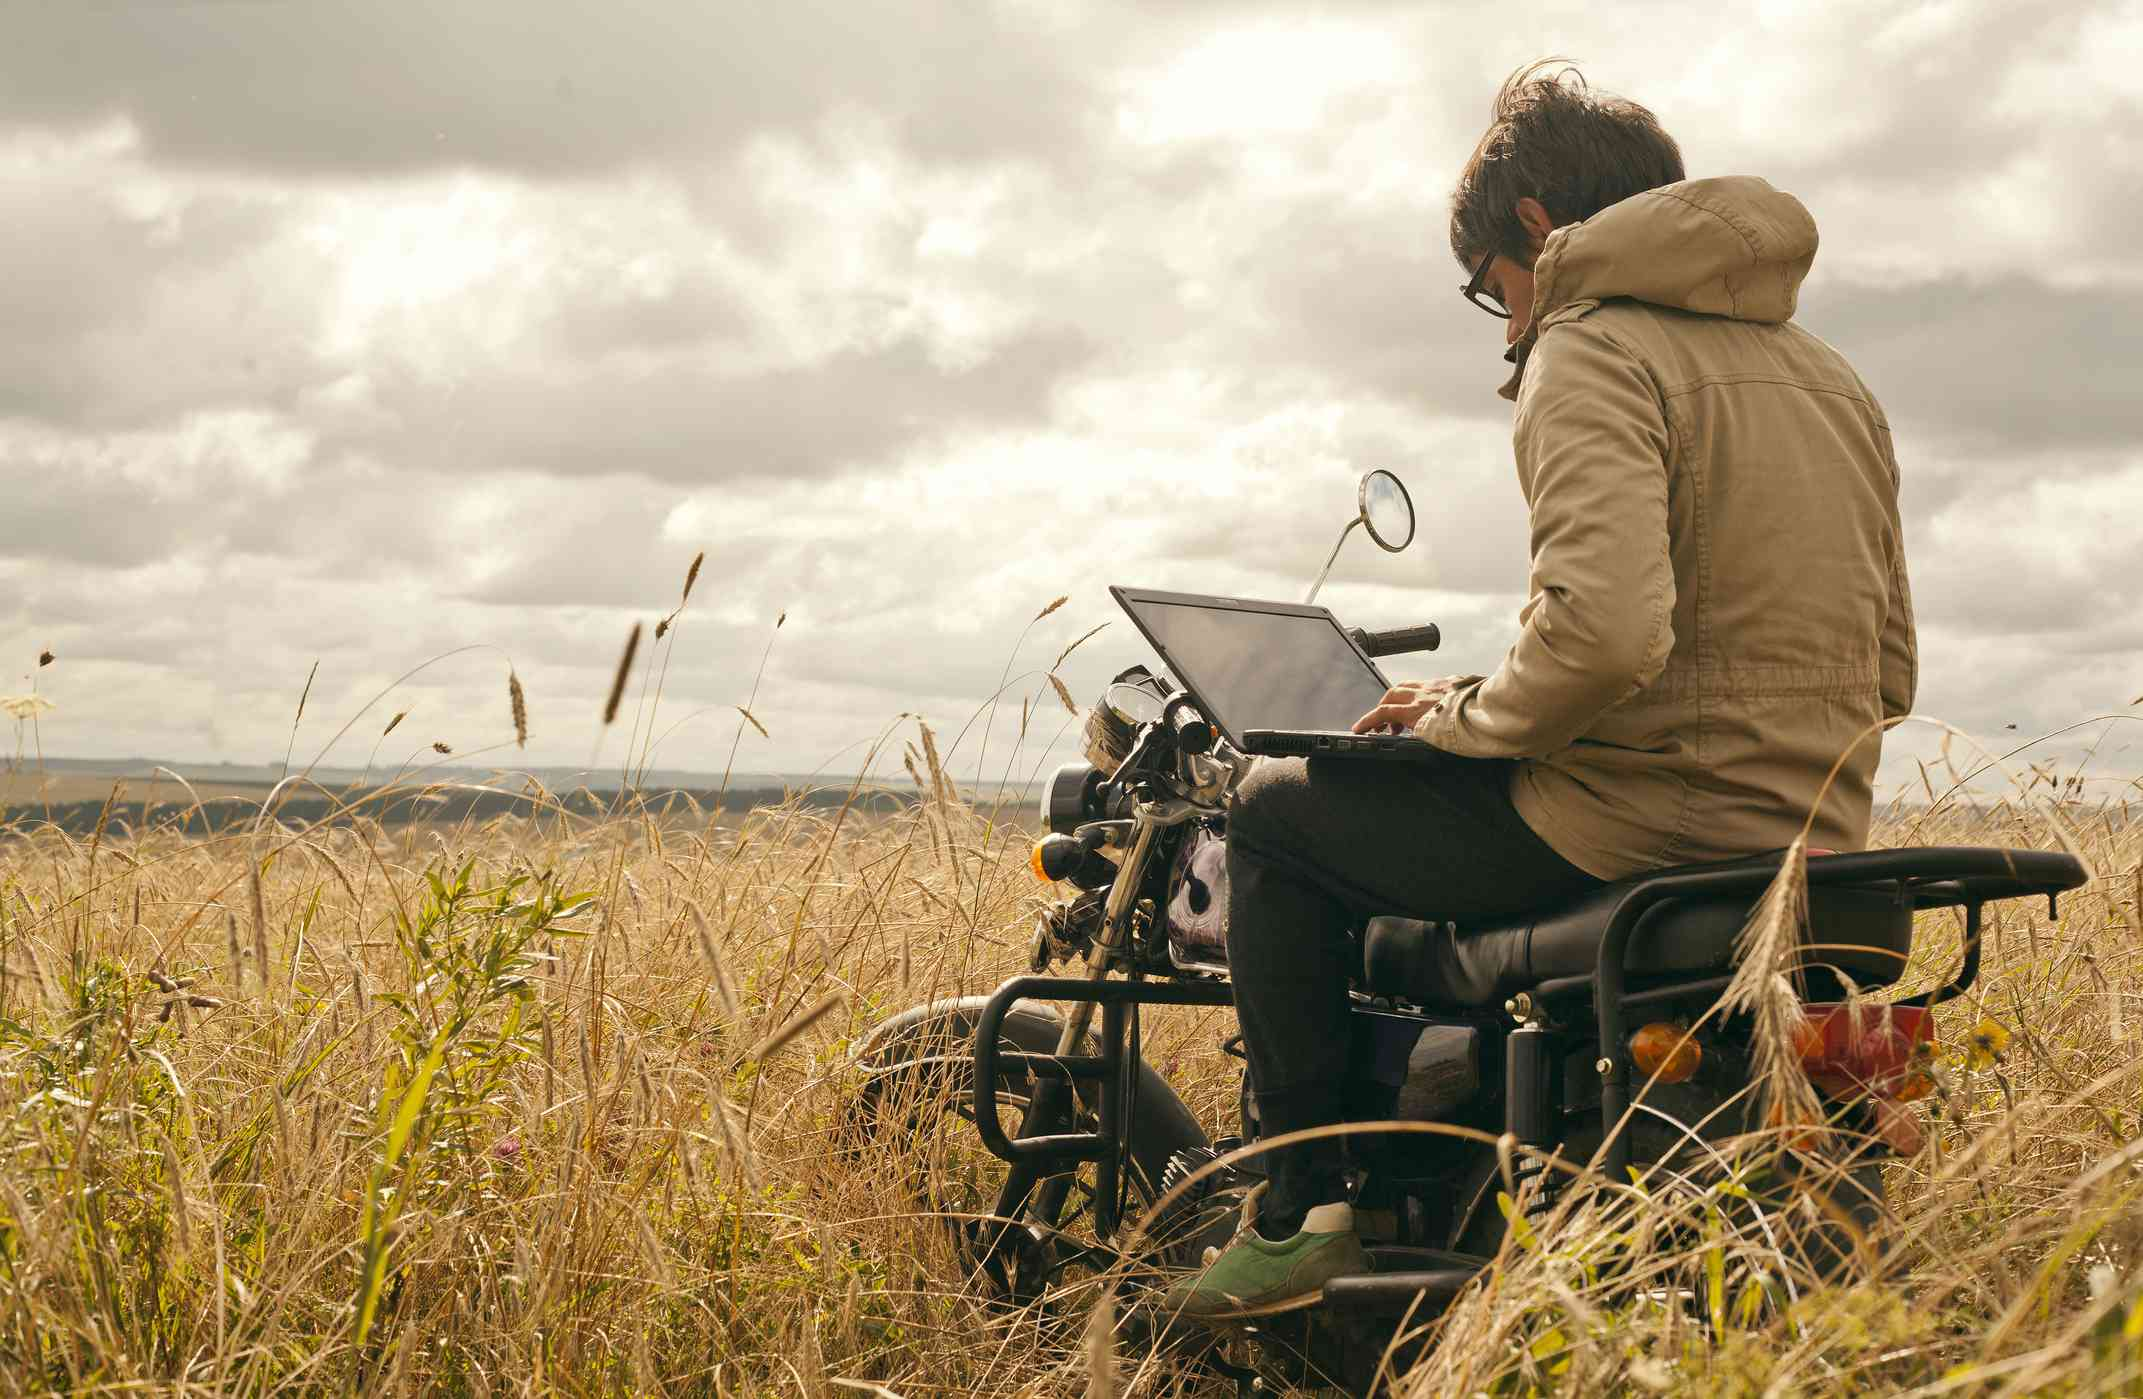 Someone using a laptop while sitting on a motorbike in the middle of a rural field.